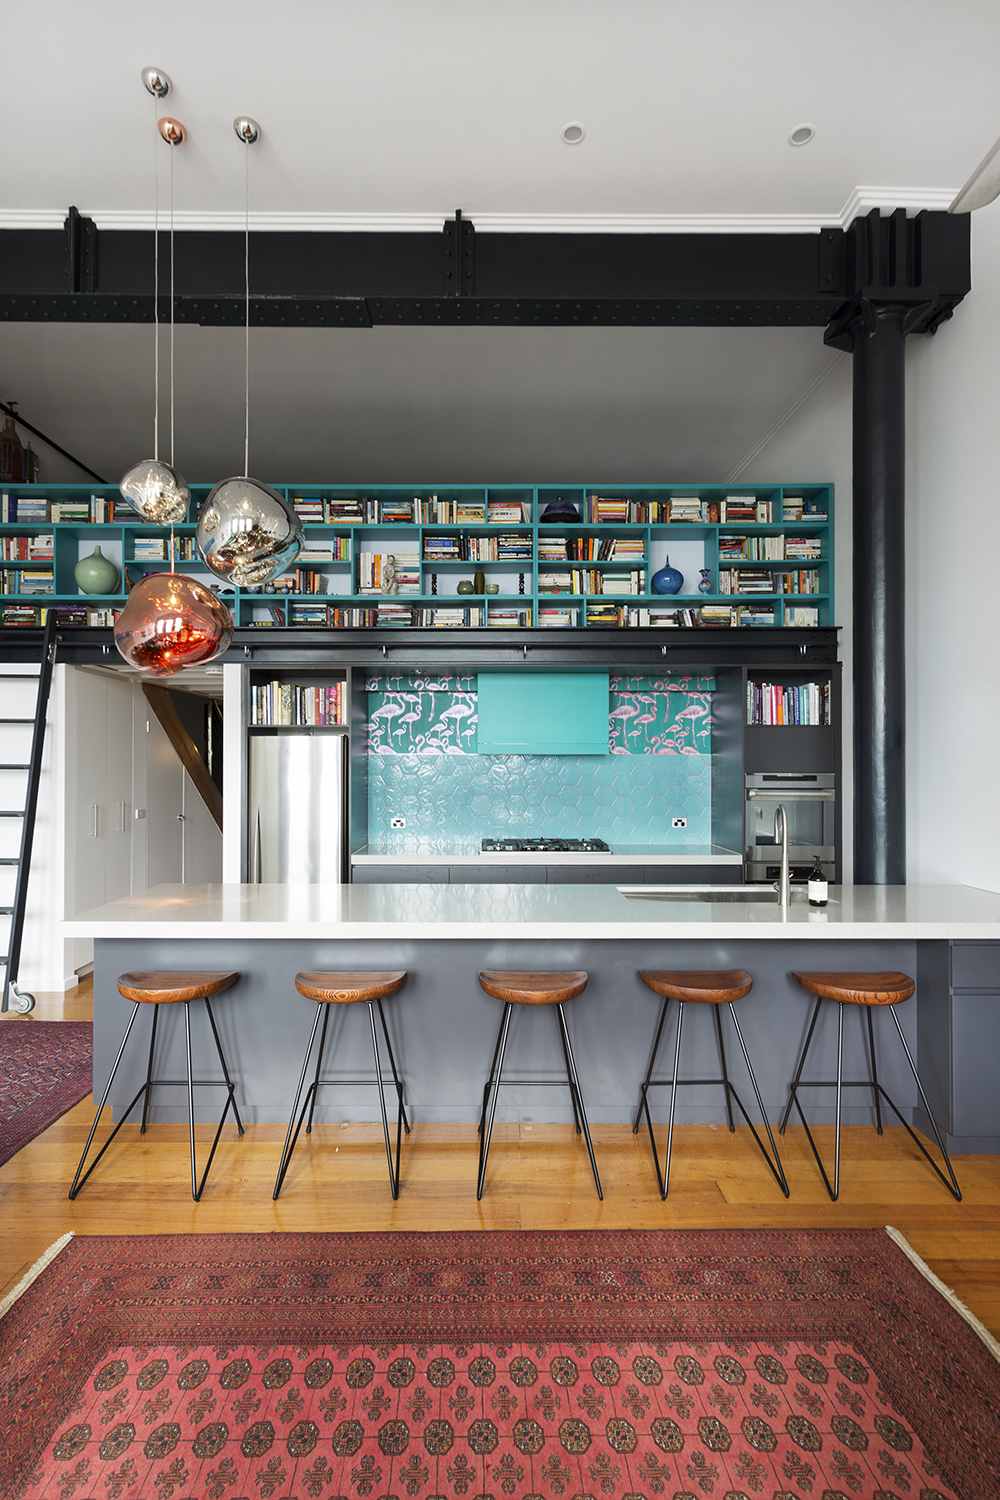 Collingwood apartment kitchen design by Melbourne interior designer Meredith Lee